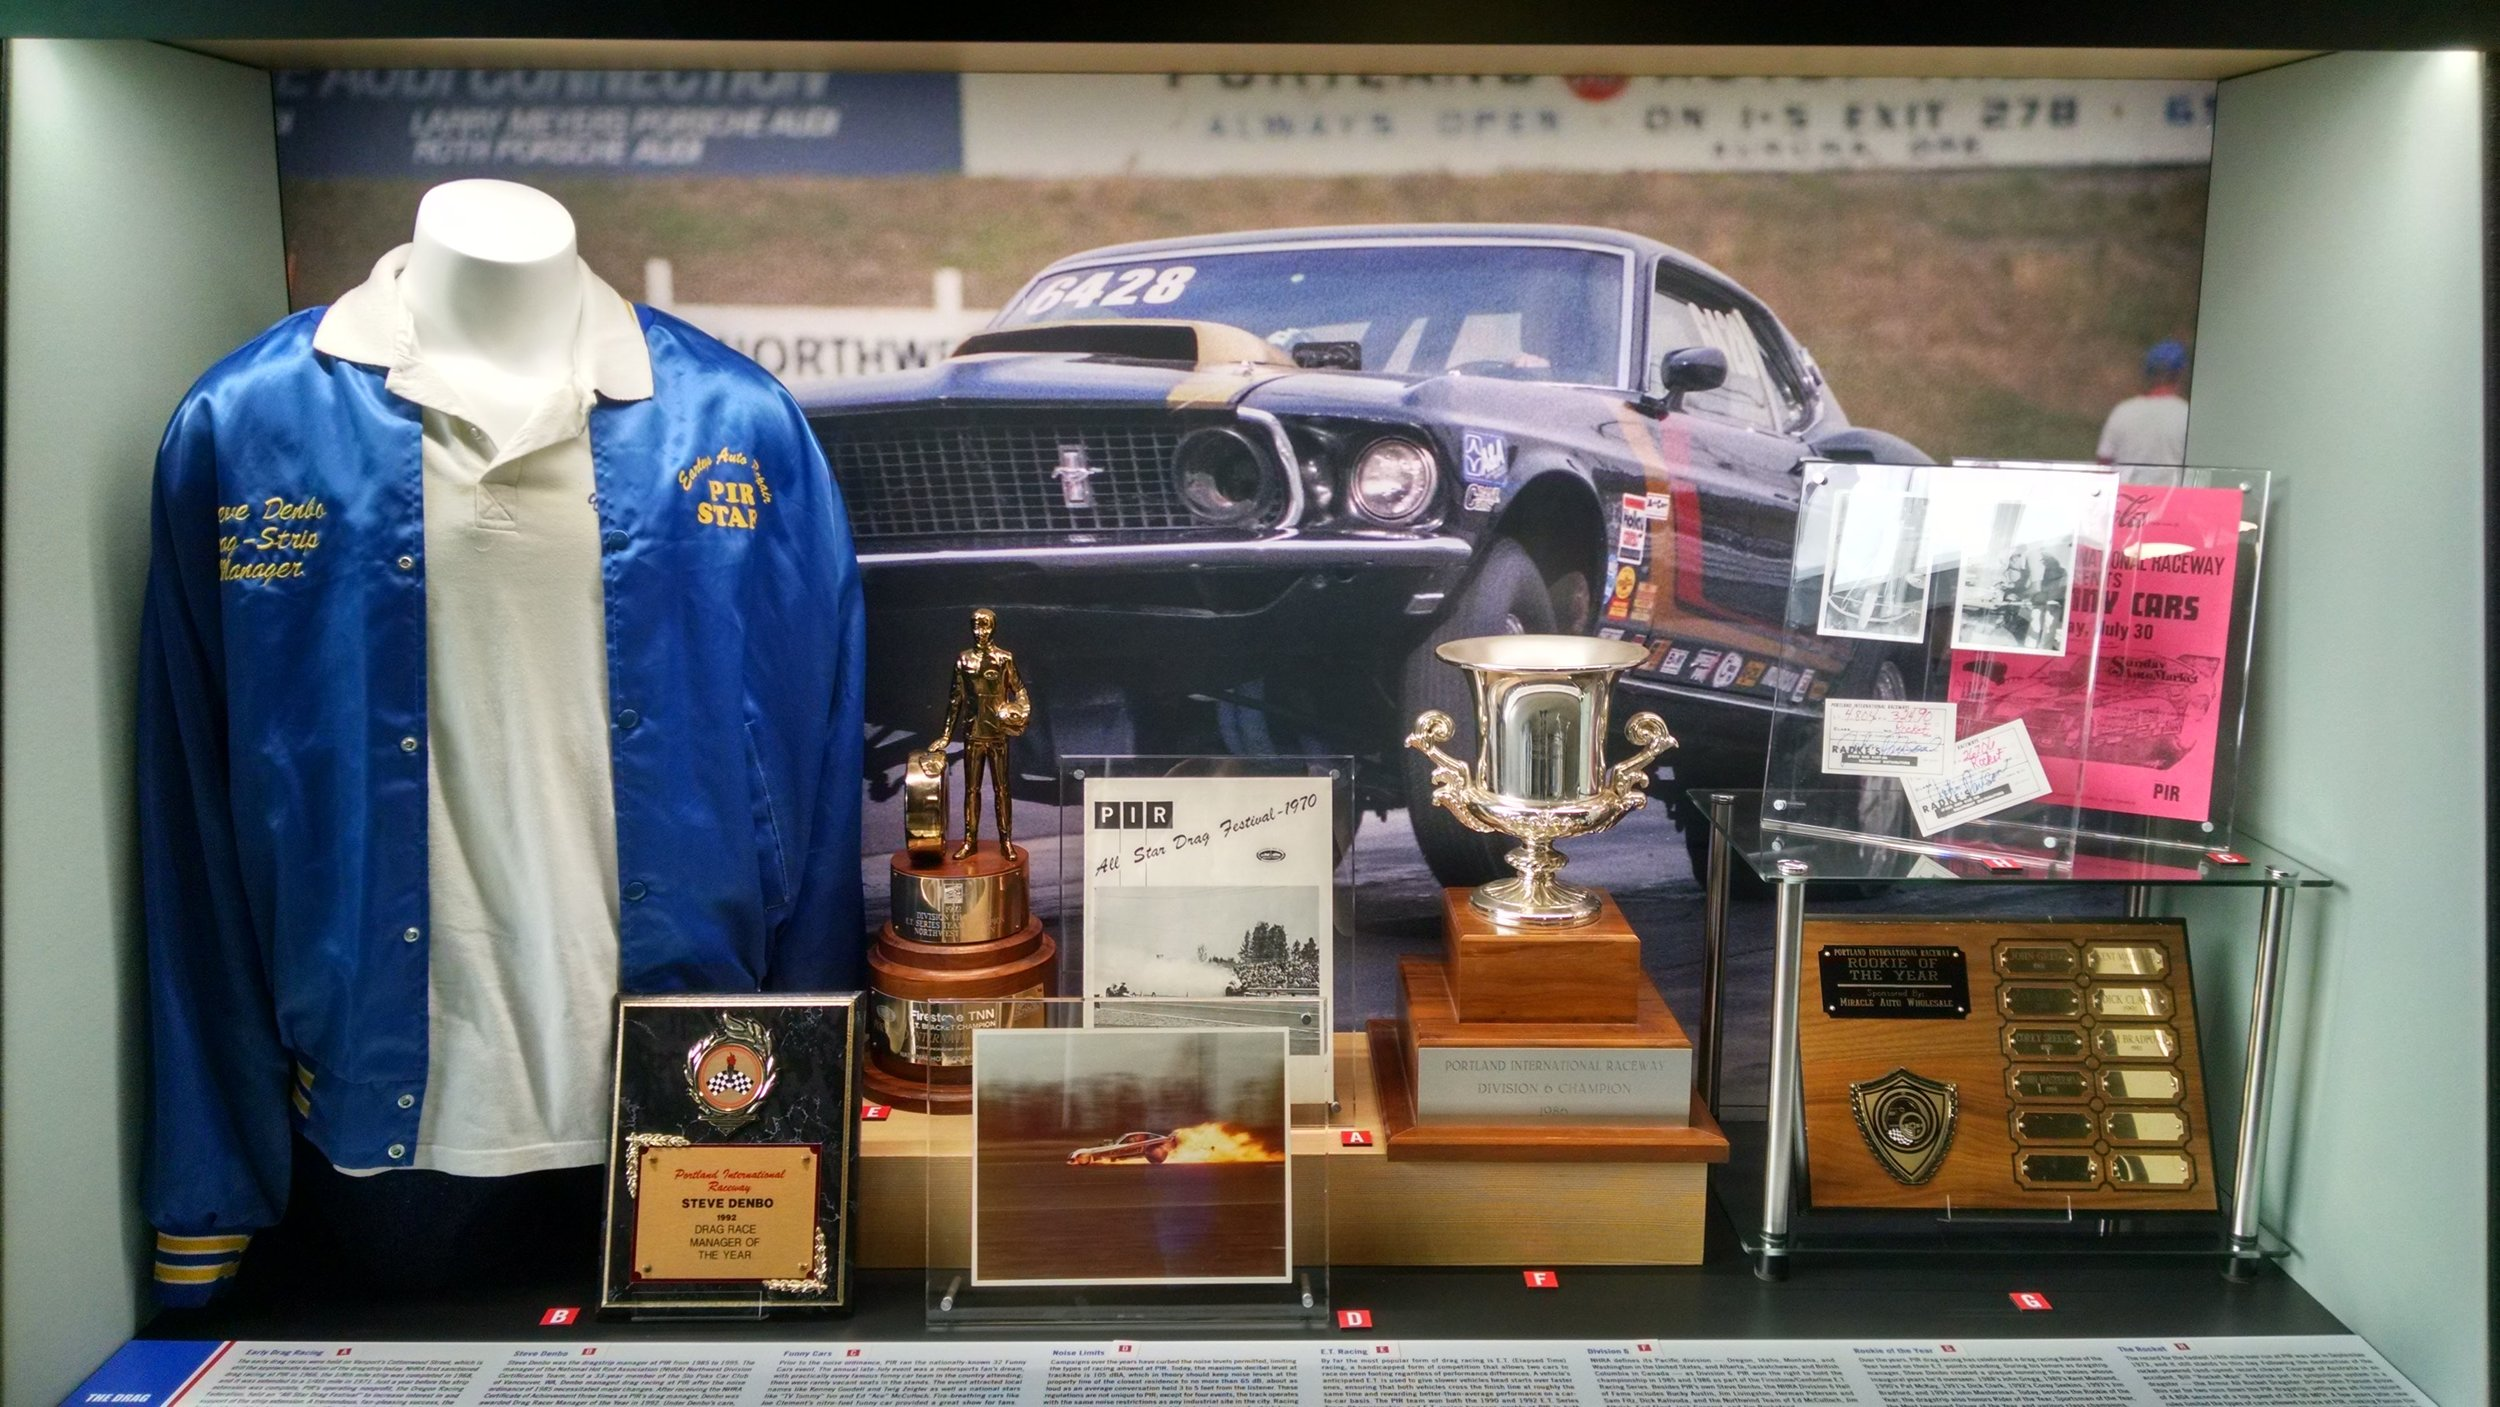 A few of the items Steve picked from the Denbo collection included in the PIR exhibit.